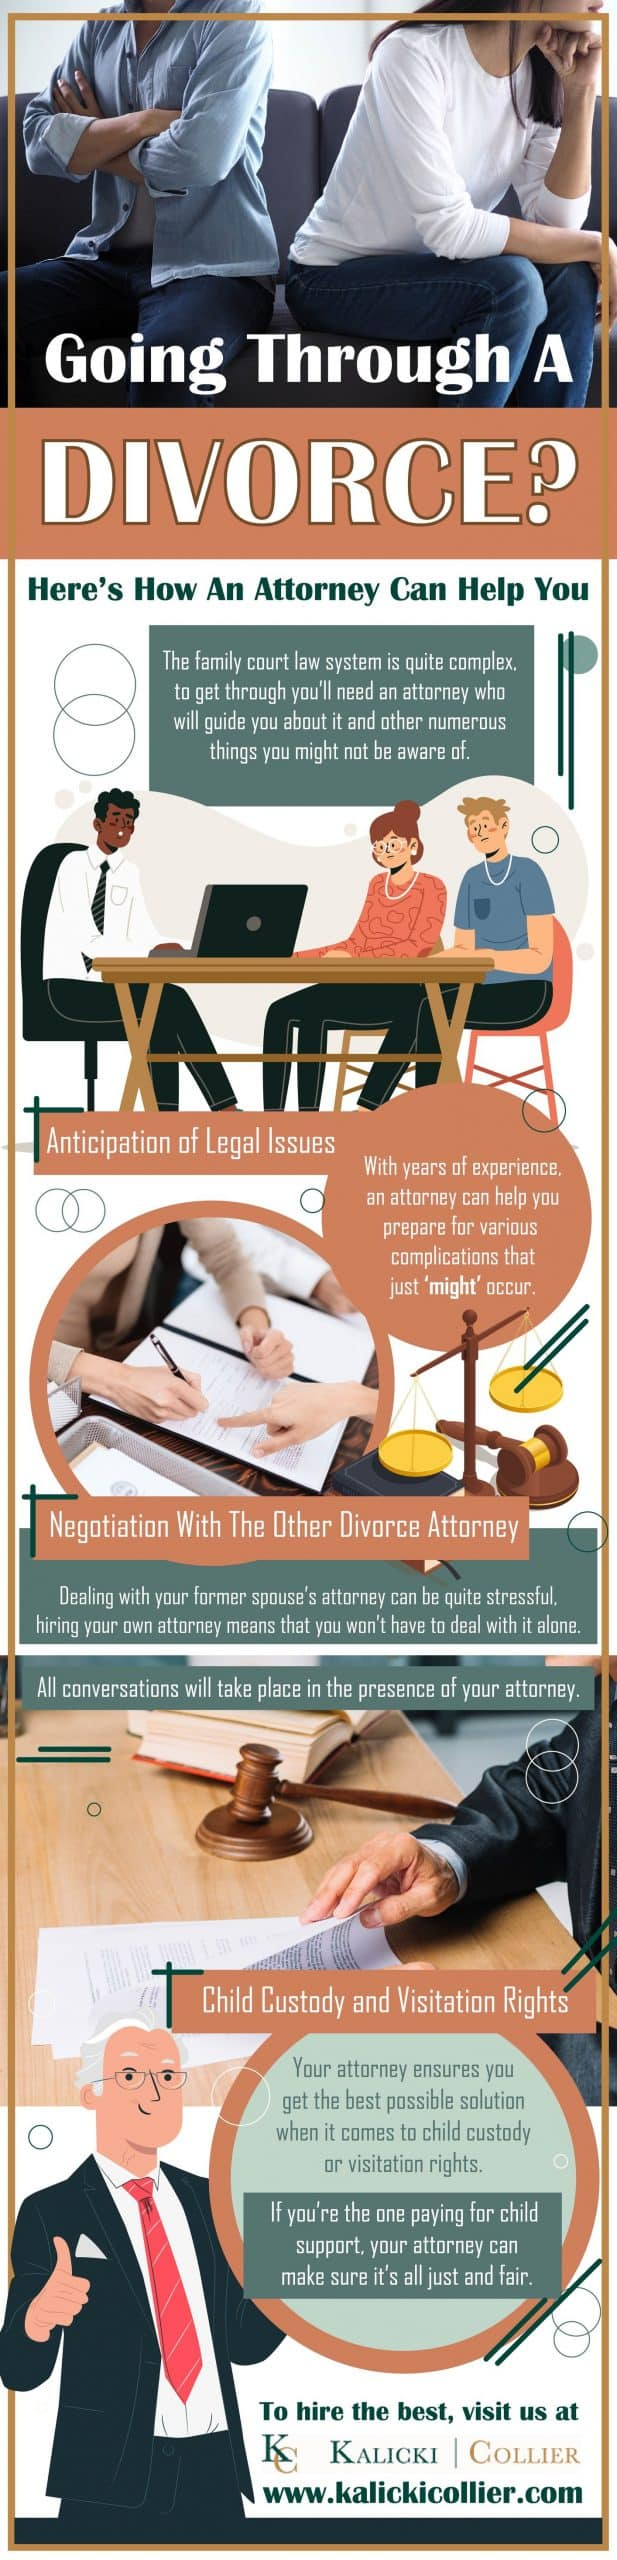 Infographic about how divorce attorney can help